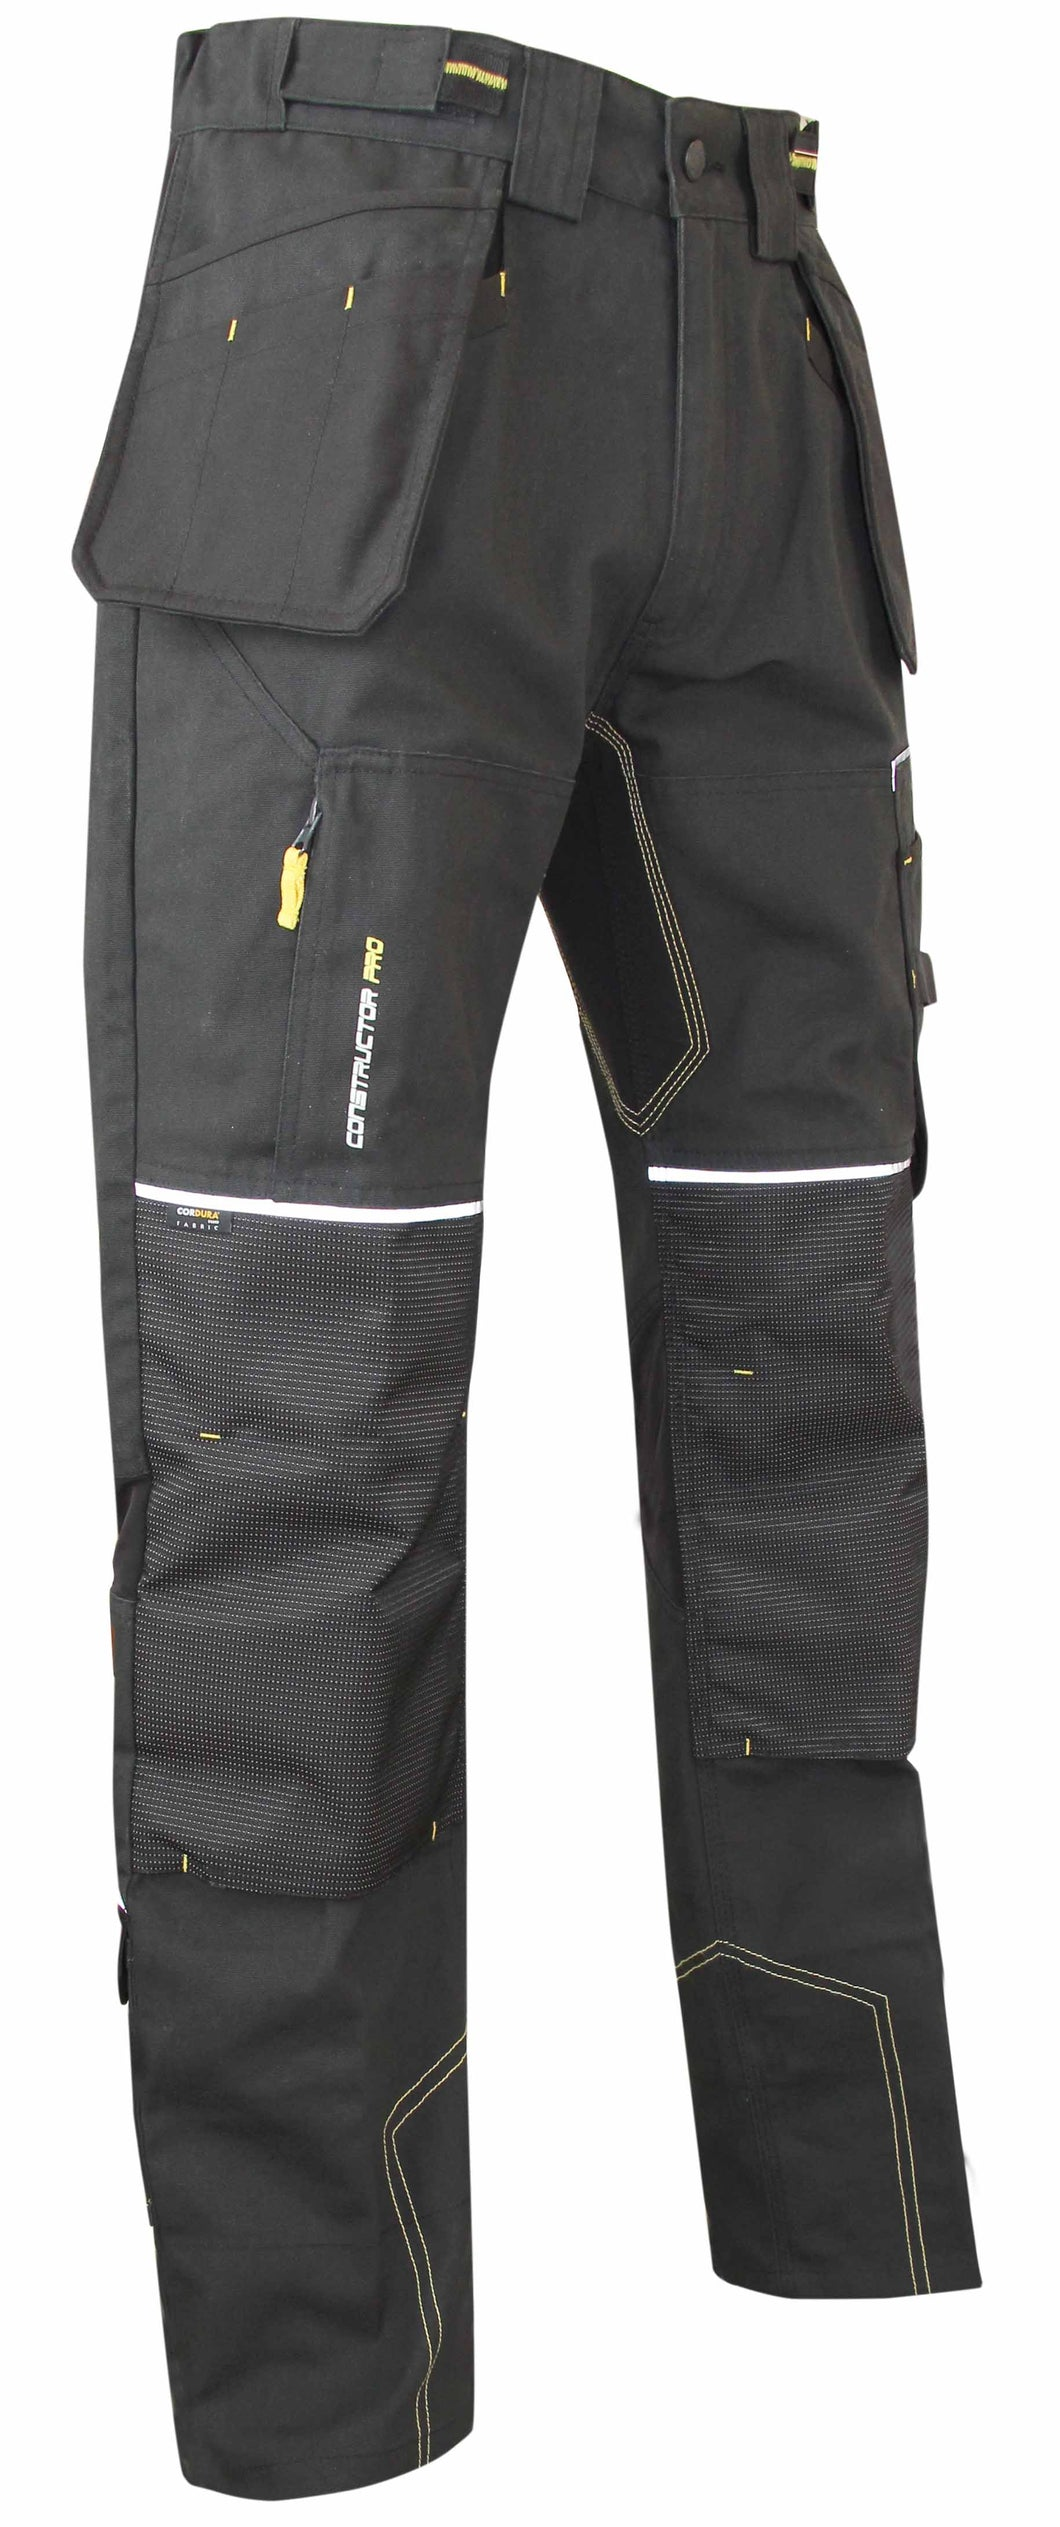 LMA Workwear Etabli Canvas Holster Trousers with Kneepad Pockets